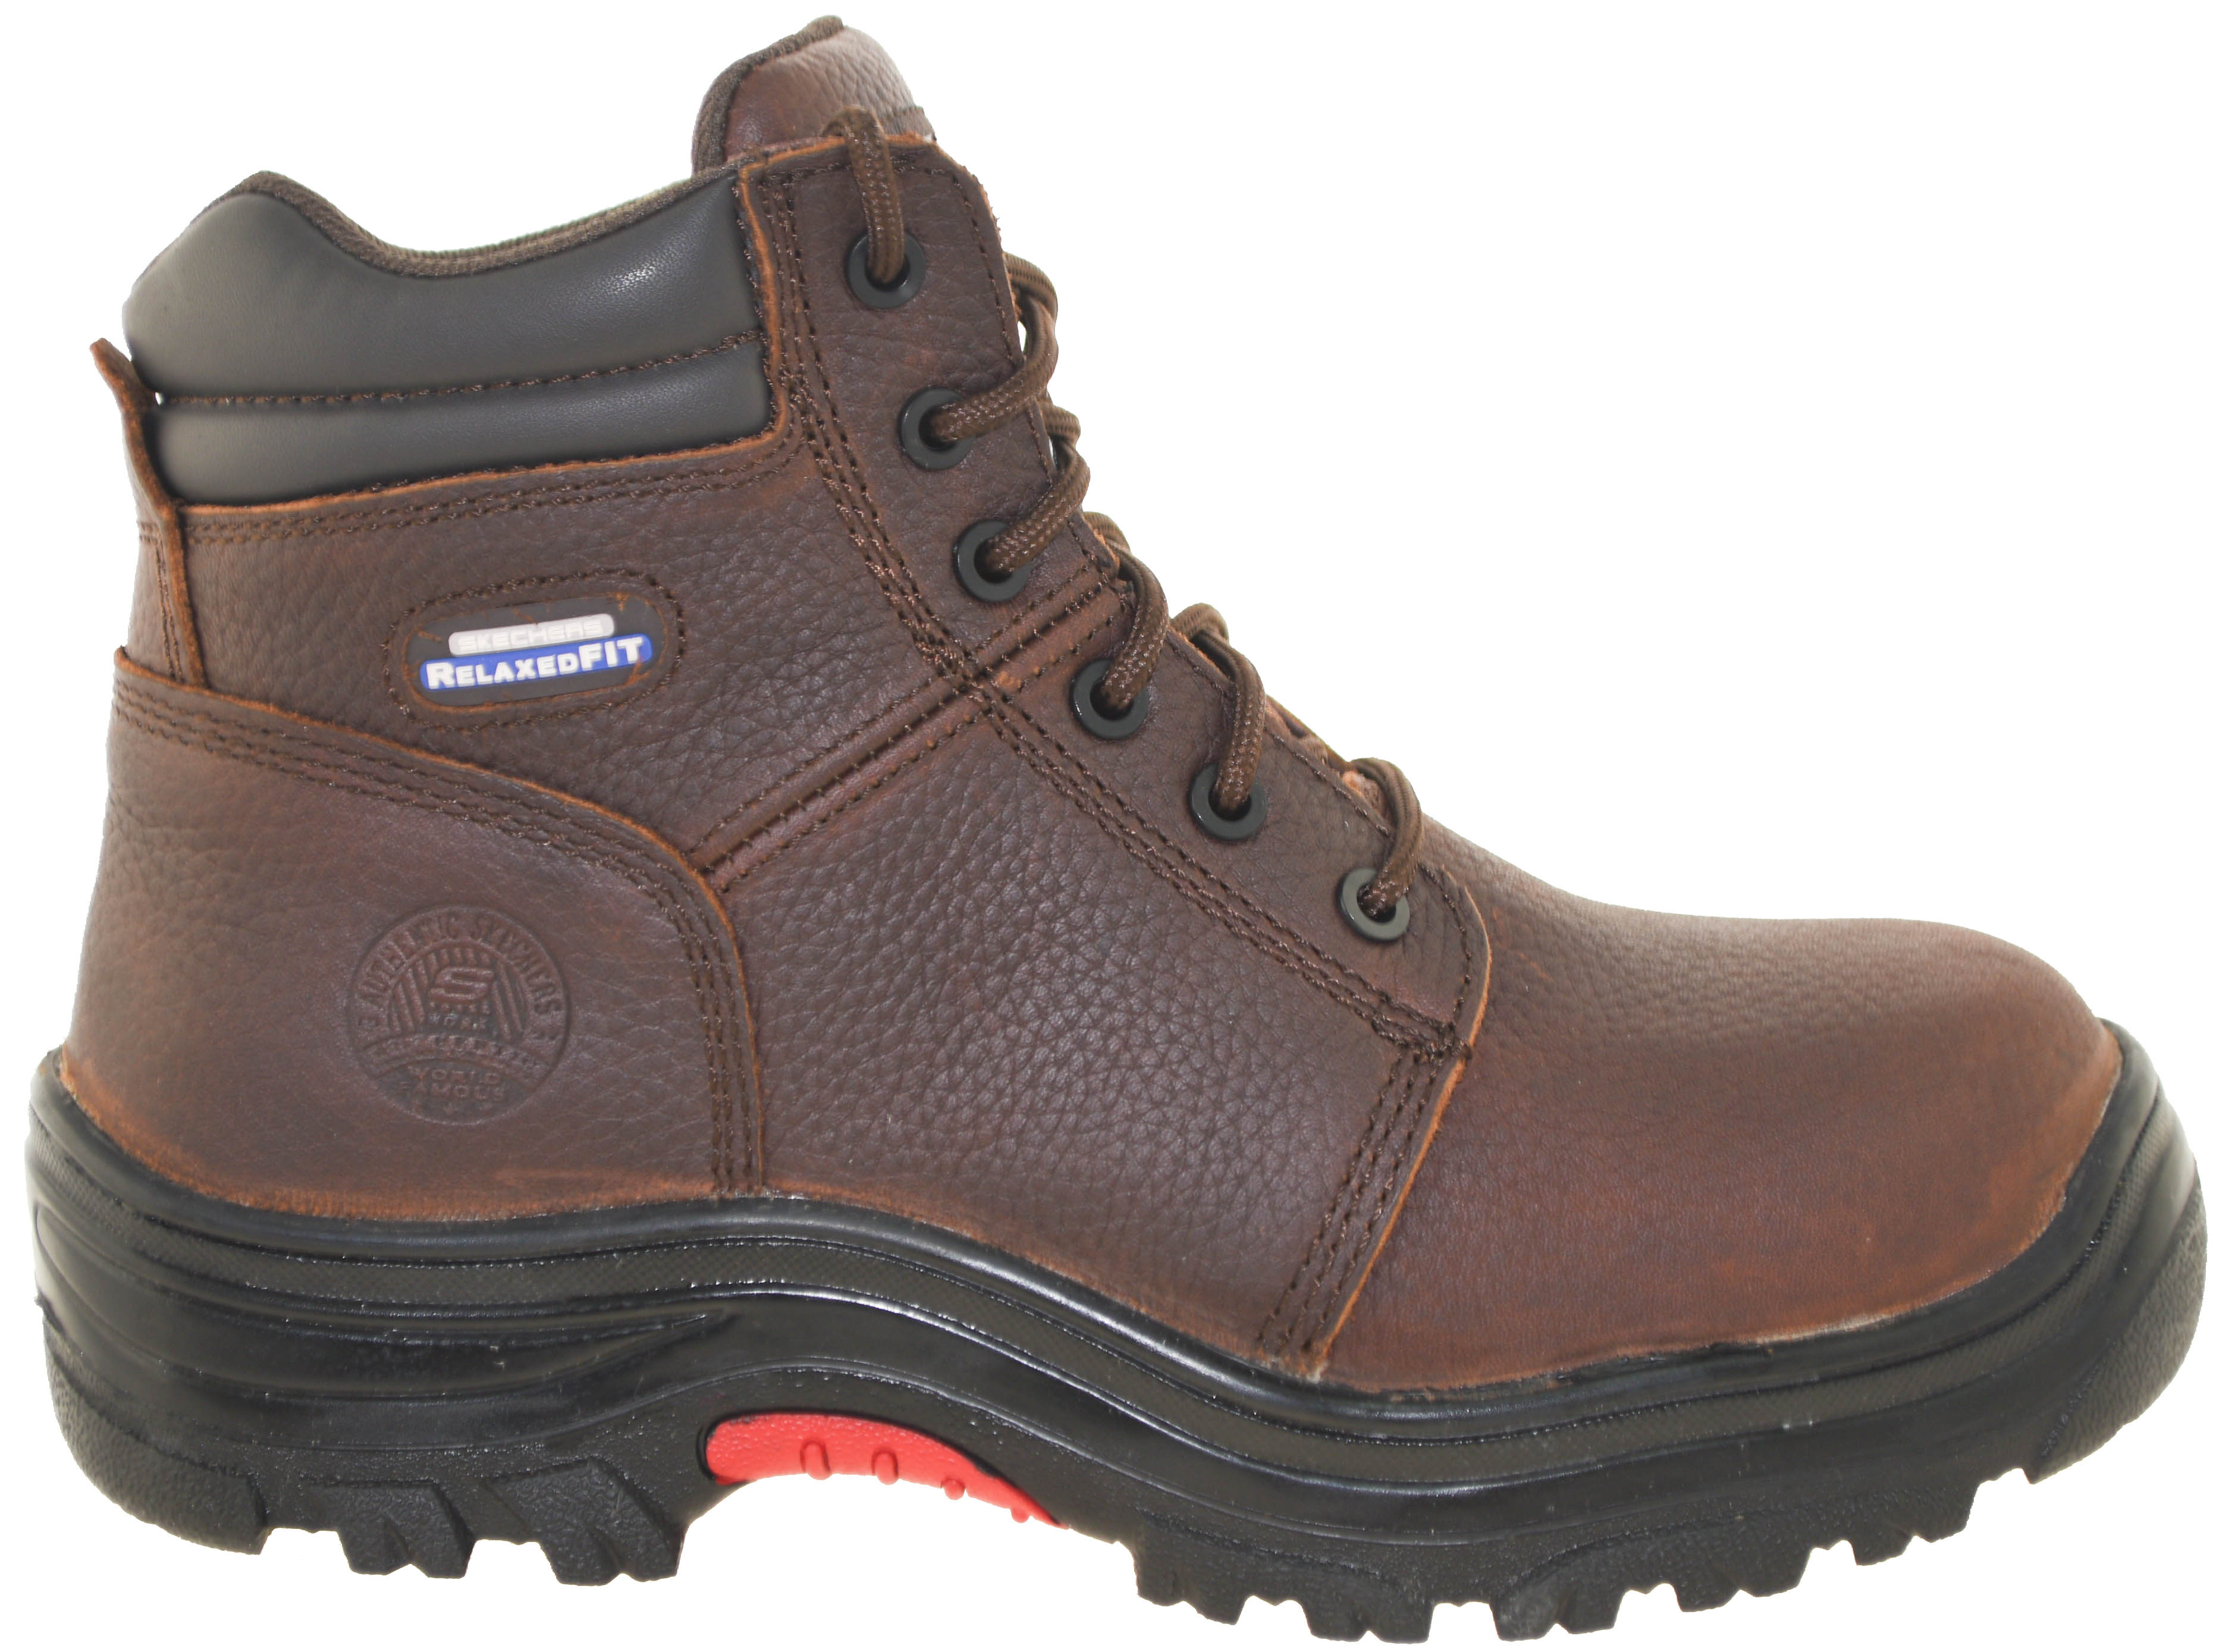 3356ce7abe4 Details about Skechers Men's Burgin Composite Toe Work Boot Style 77067 DBRN